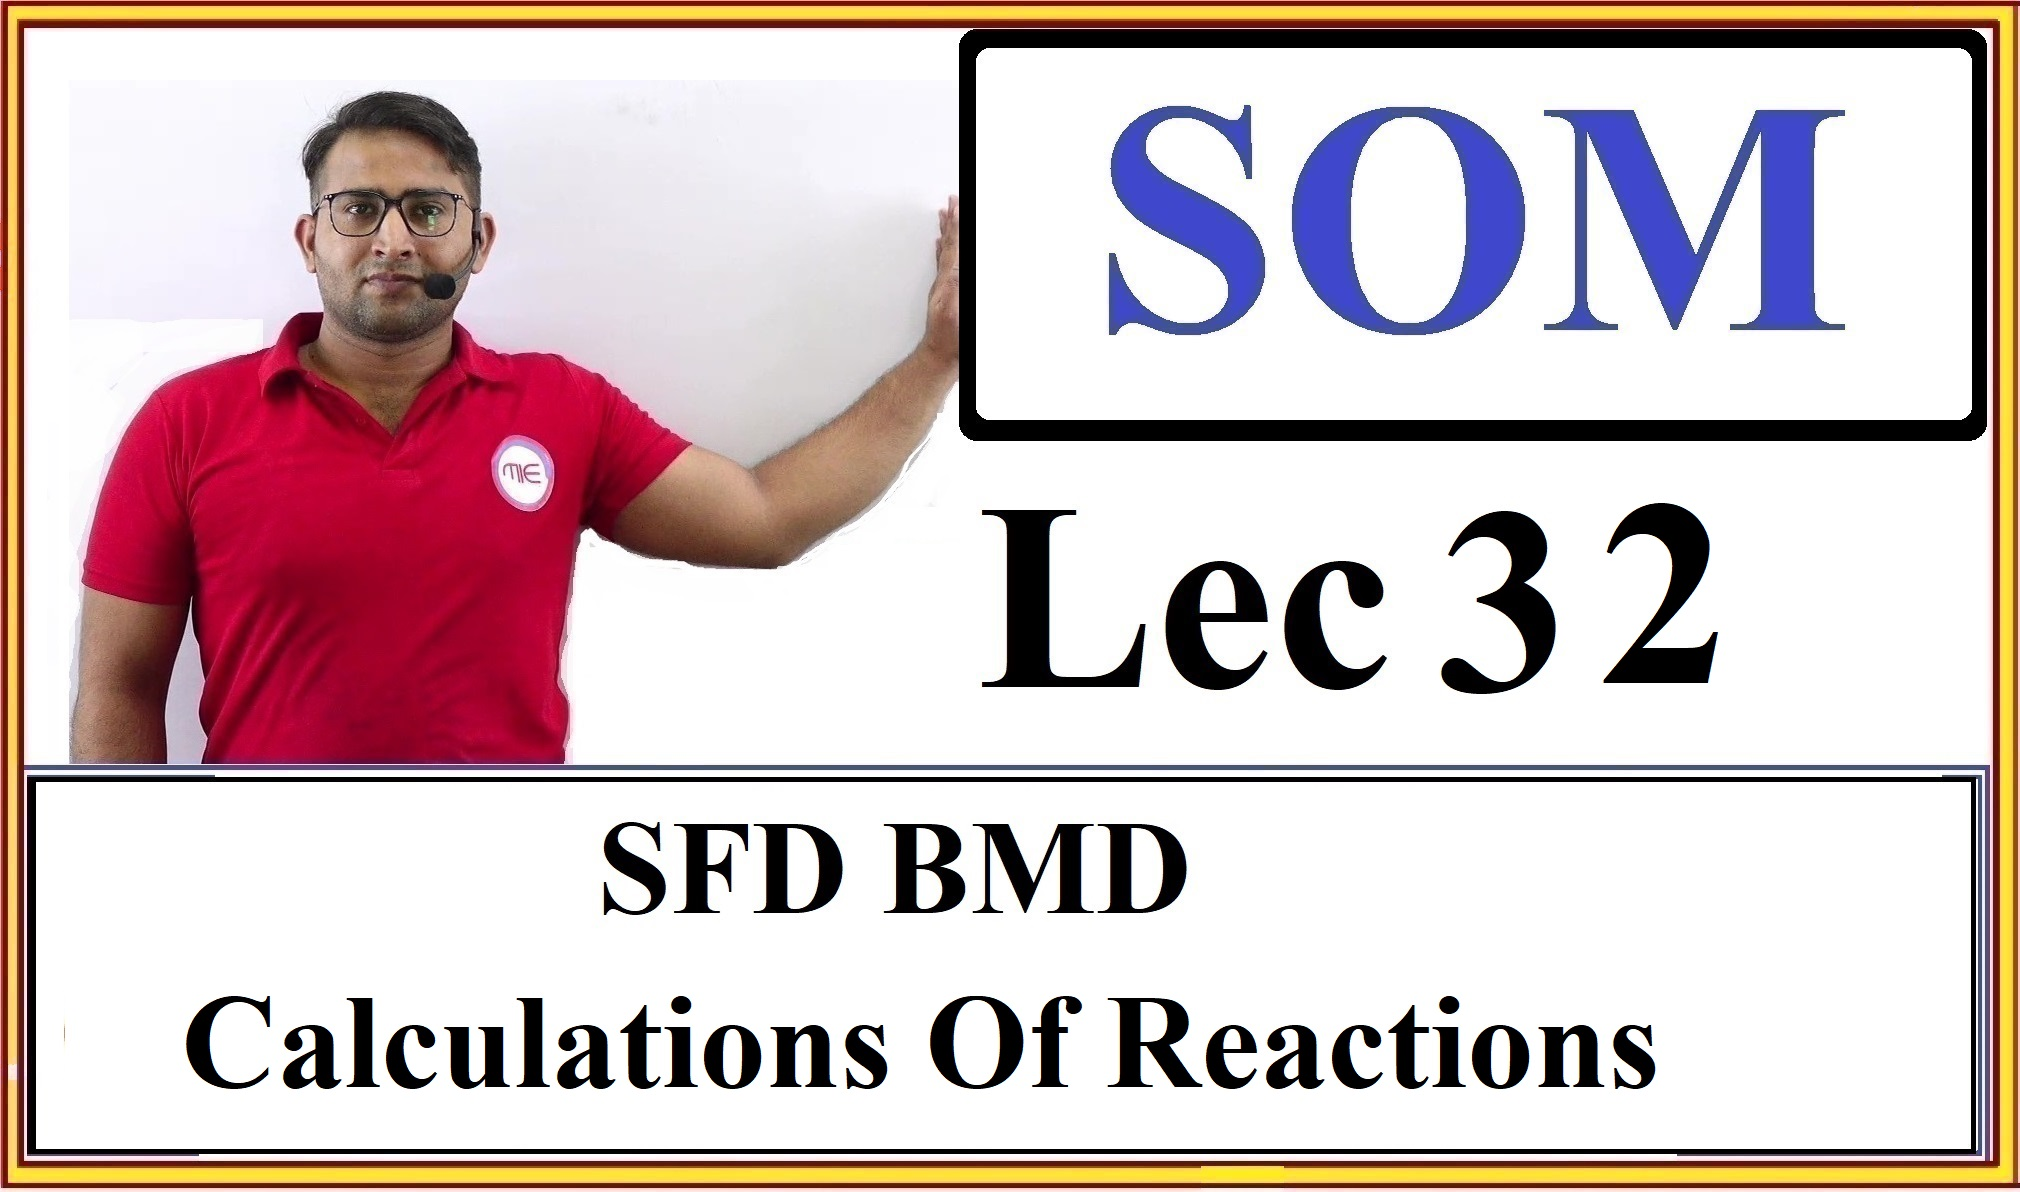 Lec 32 SFD BMD (Calculation Of Reactions)